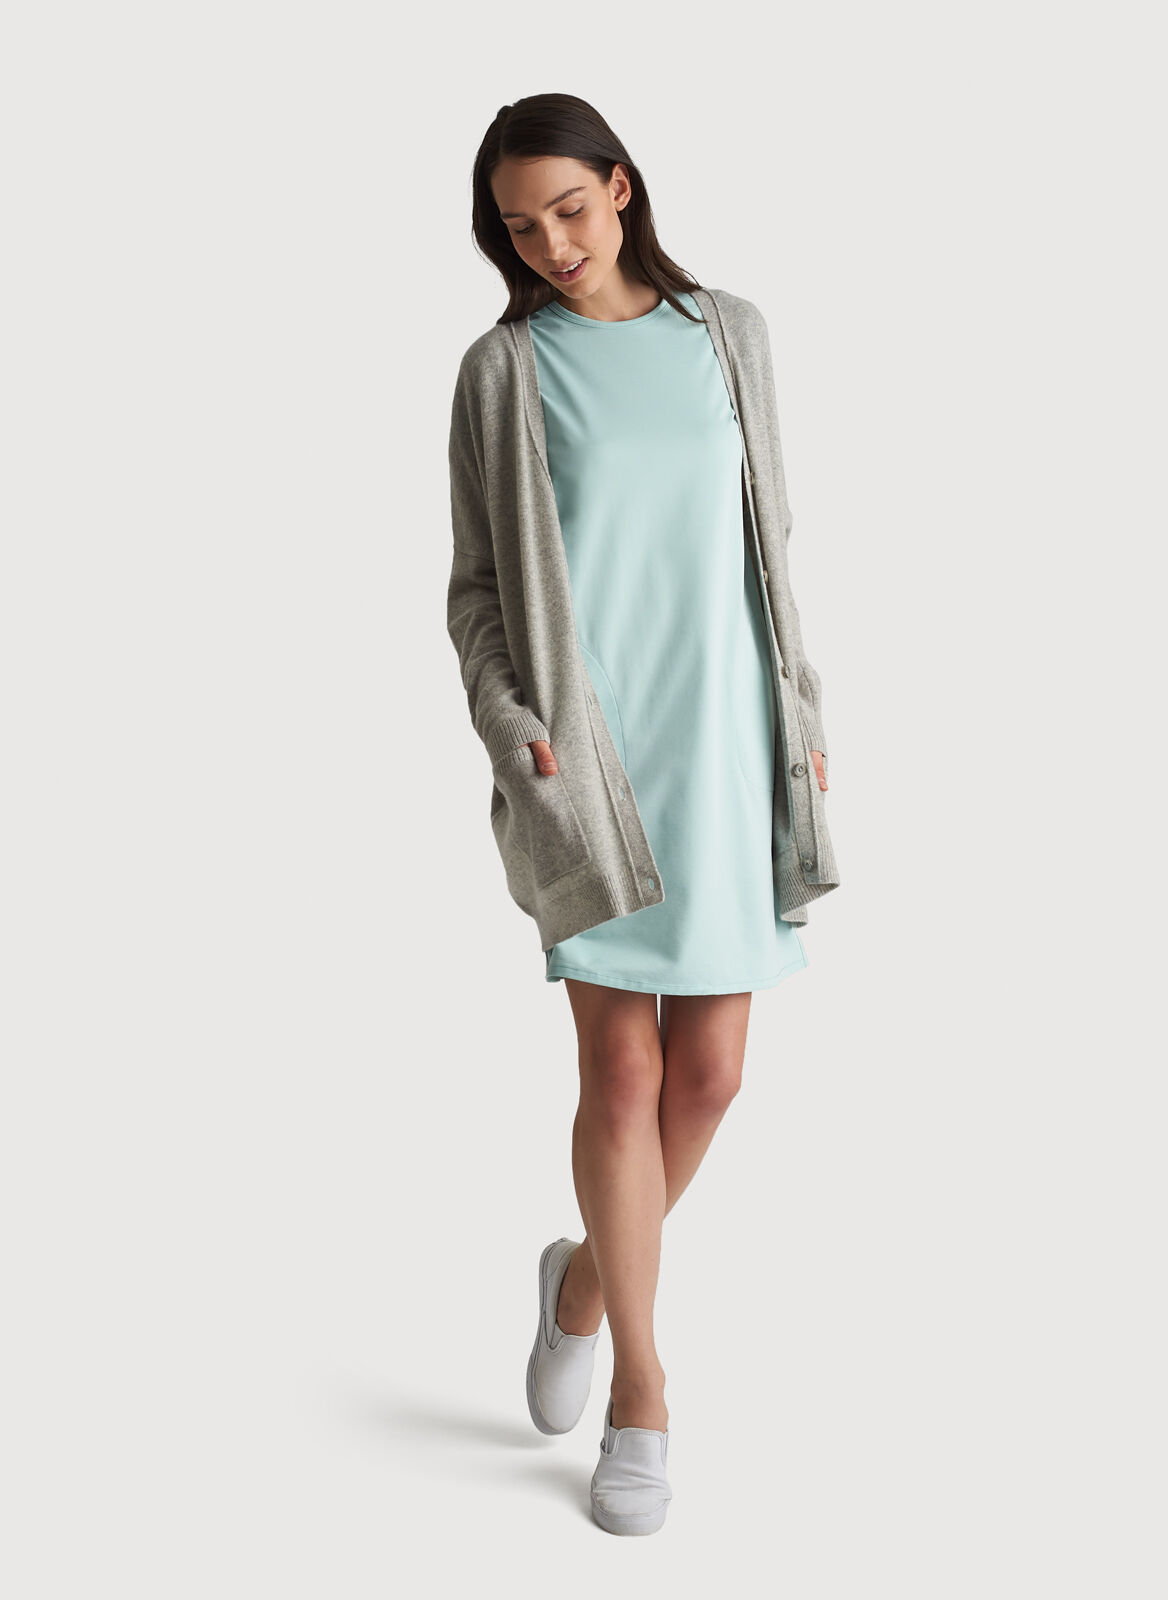 reputable site a77d4 bf5b3 Travel On Cardigan